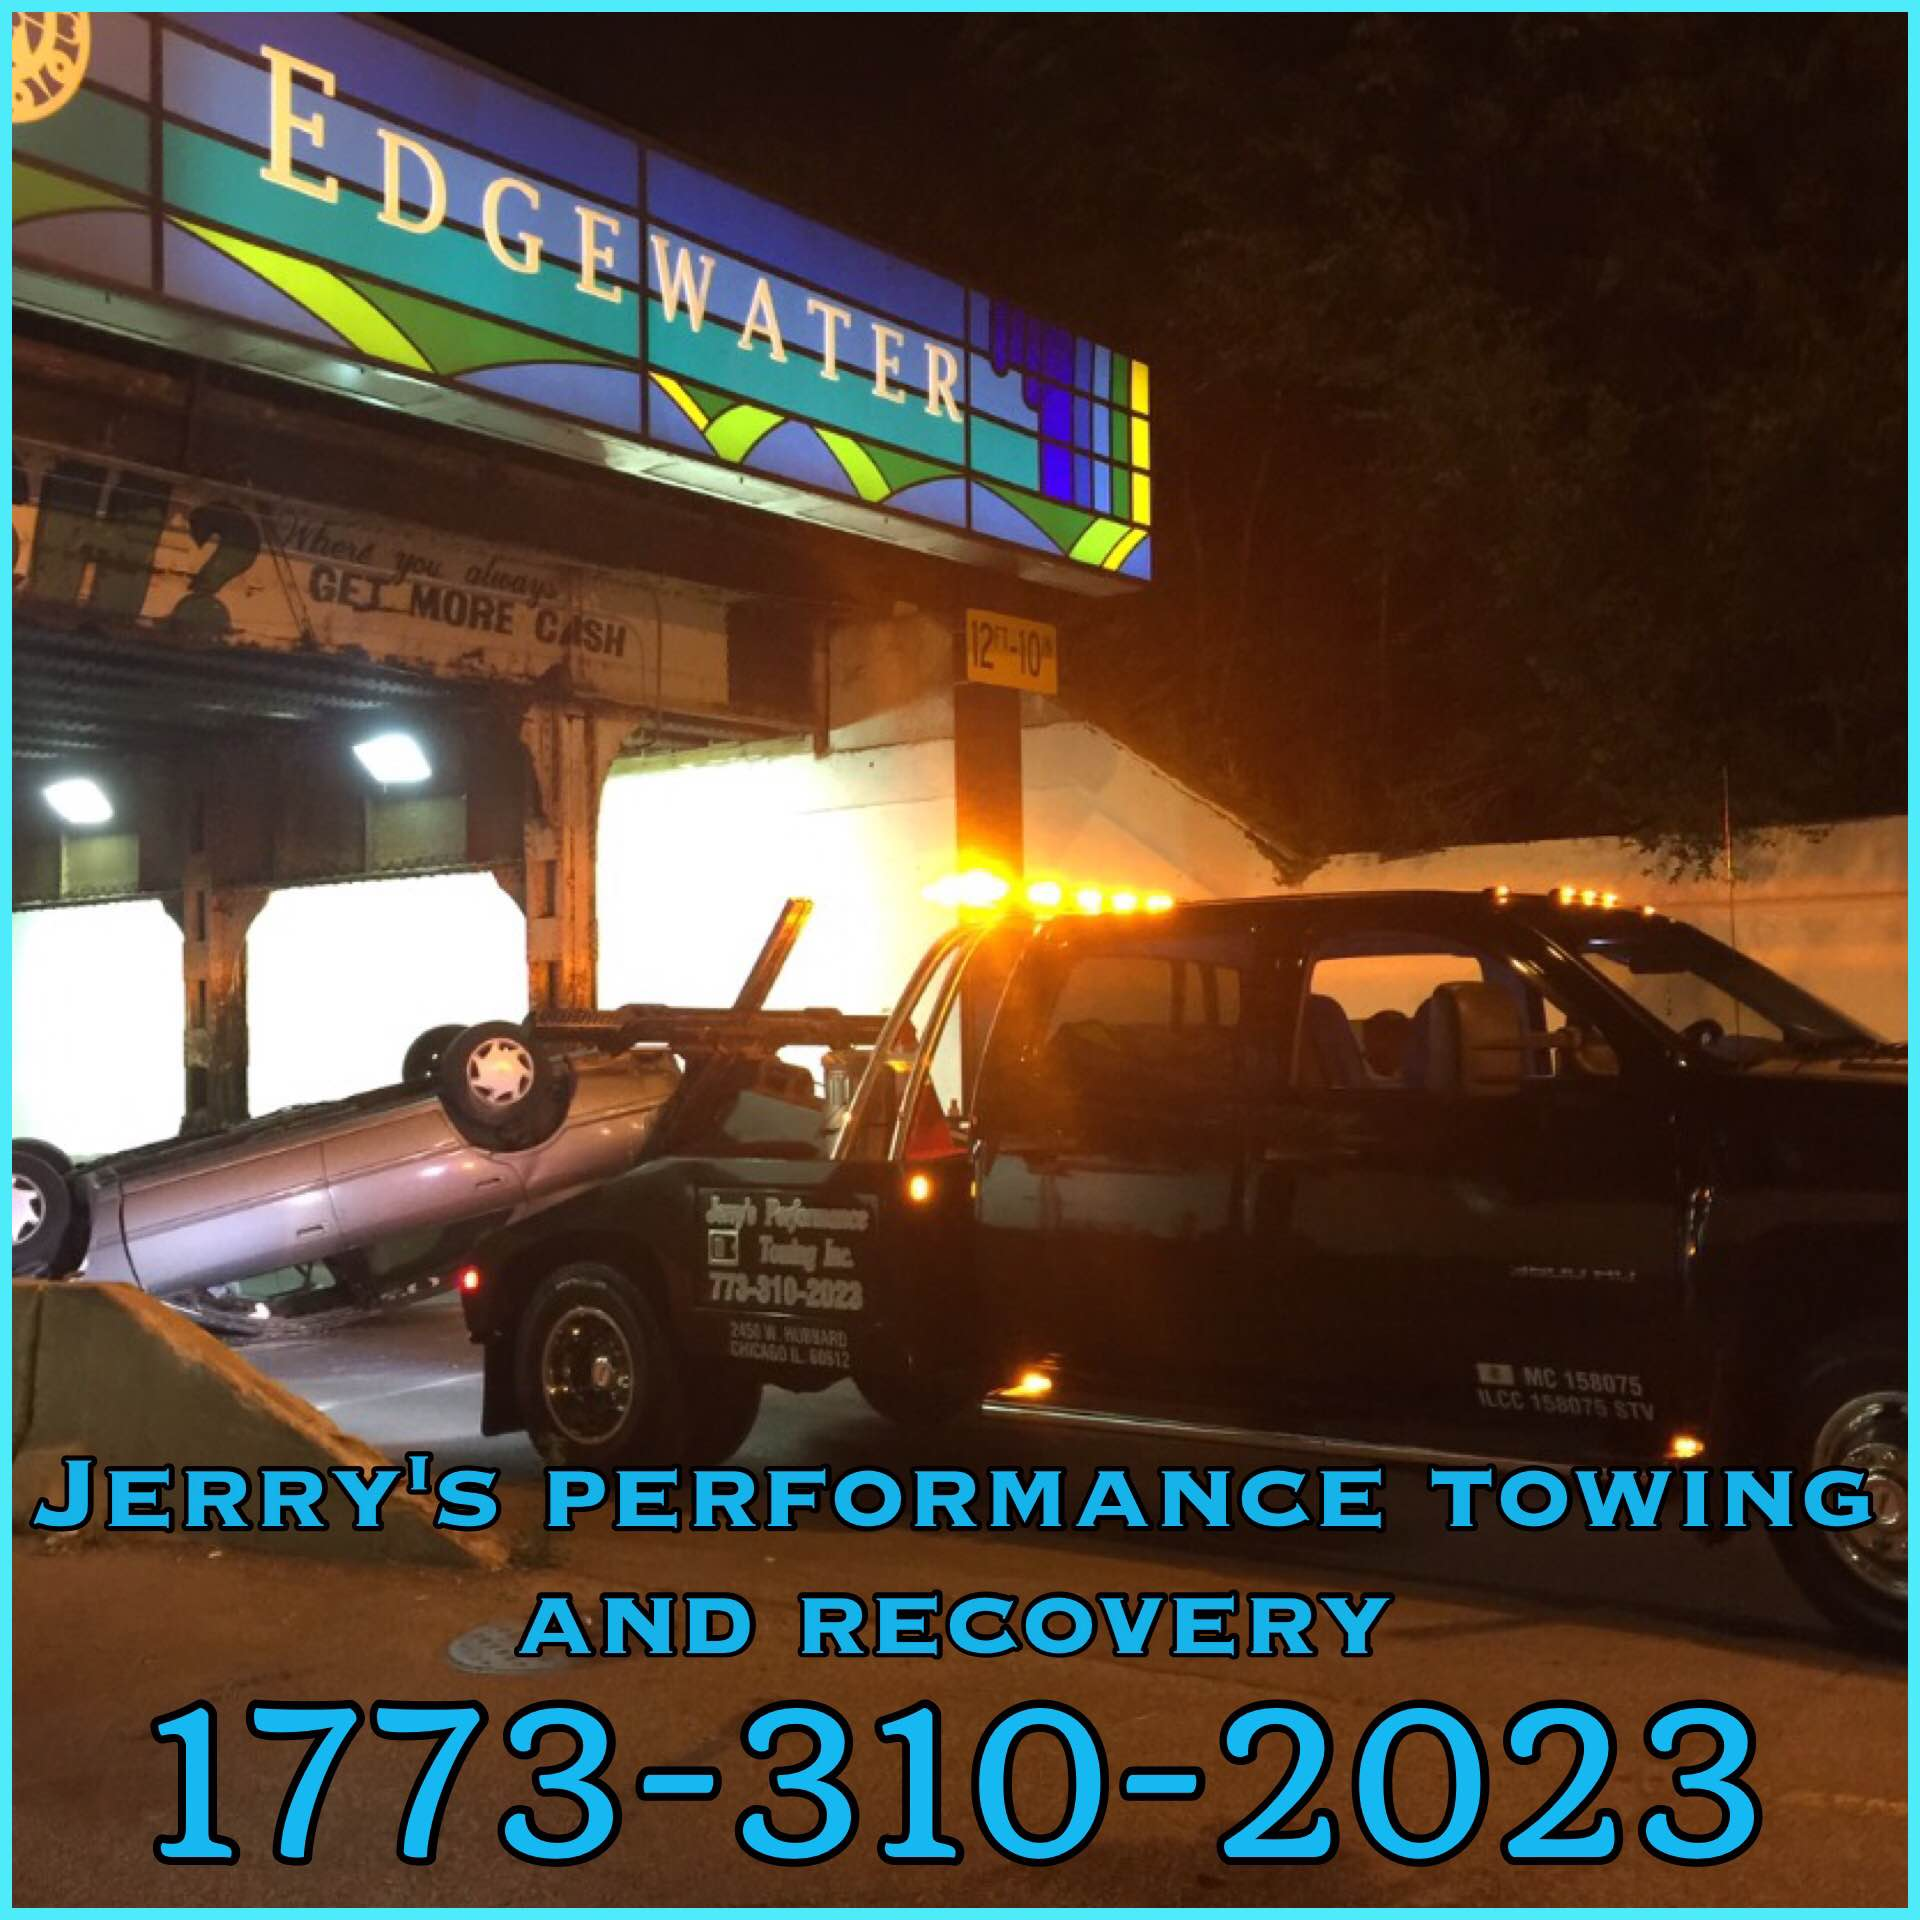 Jerry's performance towing and recovery.   Open • 24/7 Phone • (773-310-2023 ) Email •  jerryptowing16@gmail.com